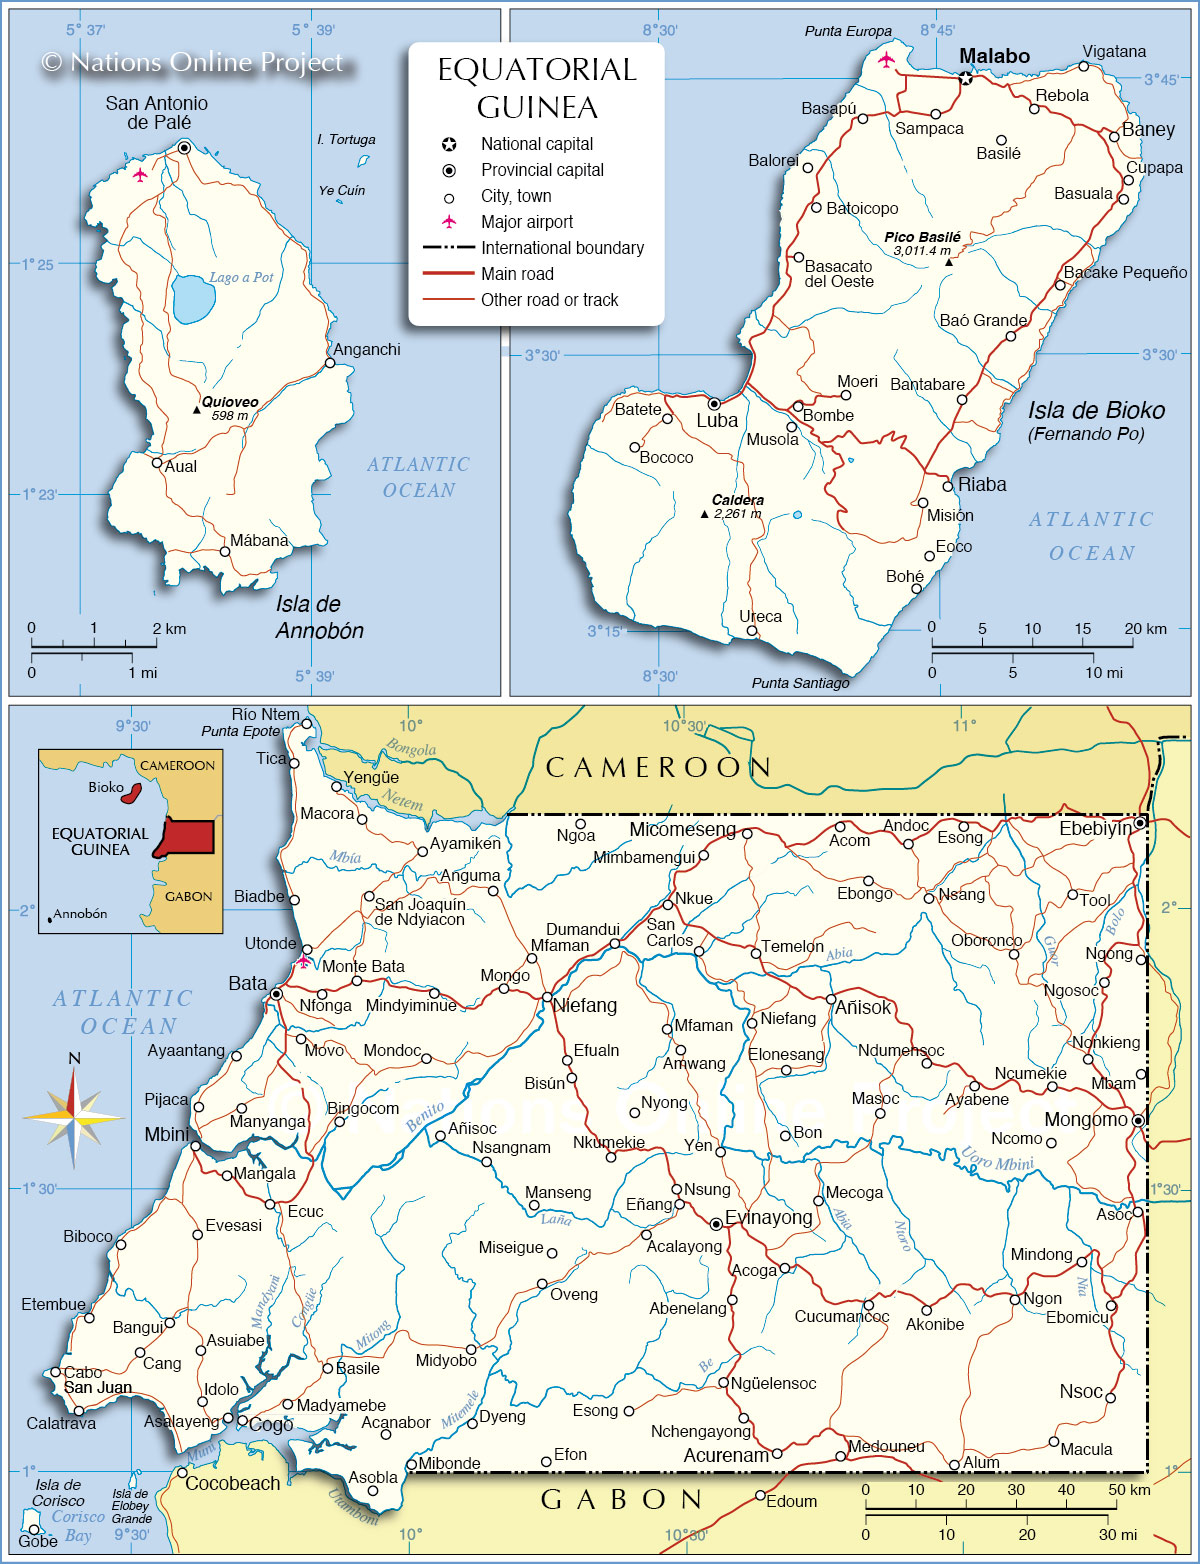 Political Map of Equatorial Guinea - Nations Online Project